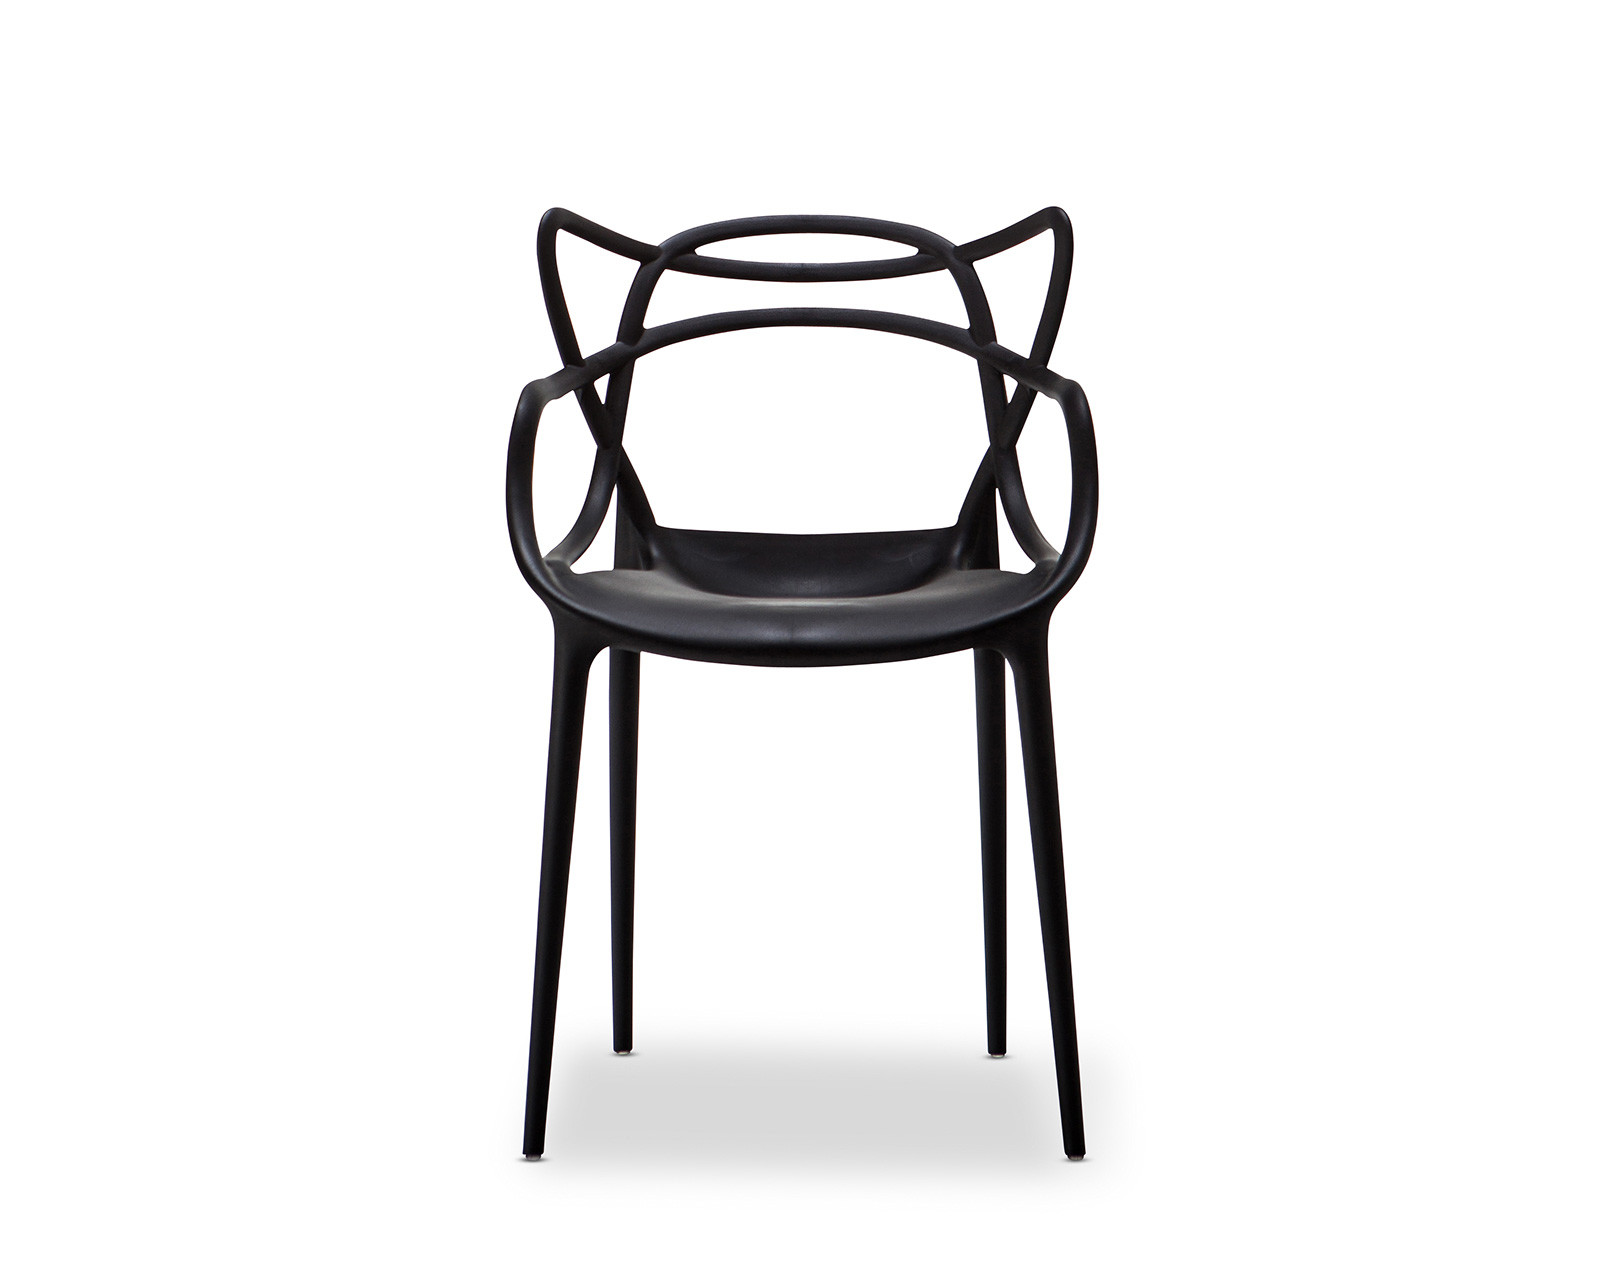 SKU #FEEL1254 Philippe Starck Replica Masters Chairs is also sometimes listed under the following manufacturer numbers 701-001x4 701-002x4  sc 1 st  Temple u0026 Webster & Continental Designs Philippe Starck Replica Masters Chairs u0026 Reviews ...